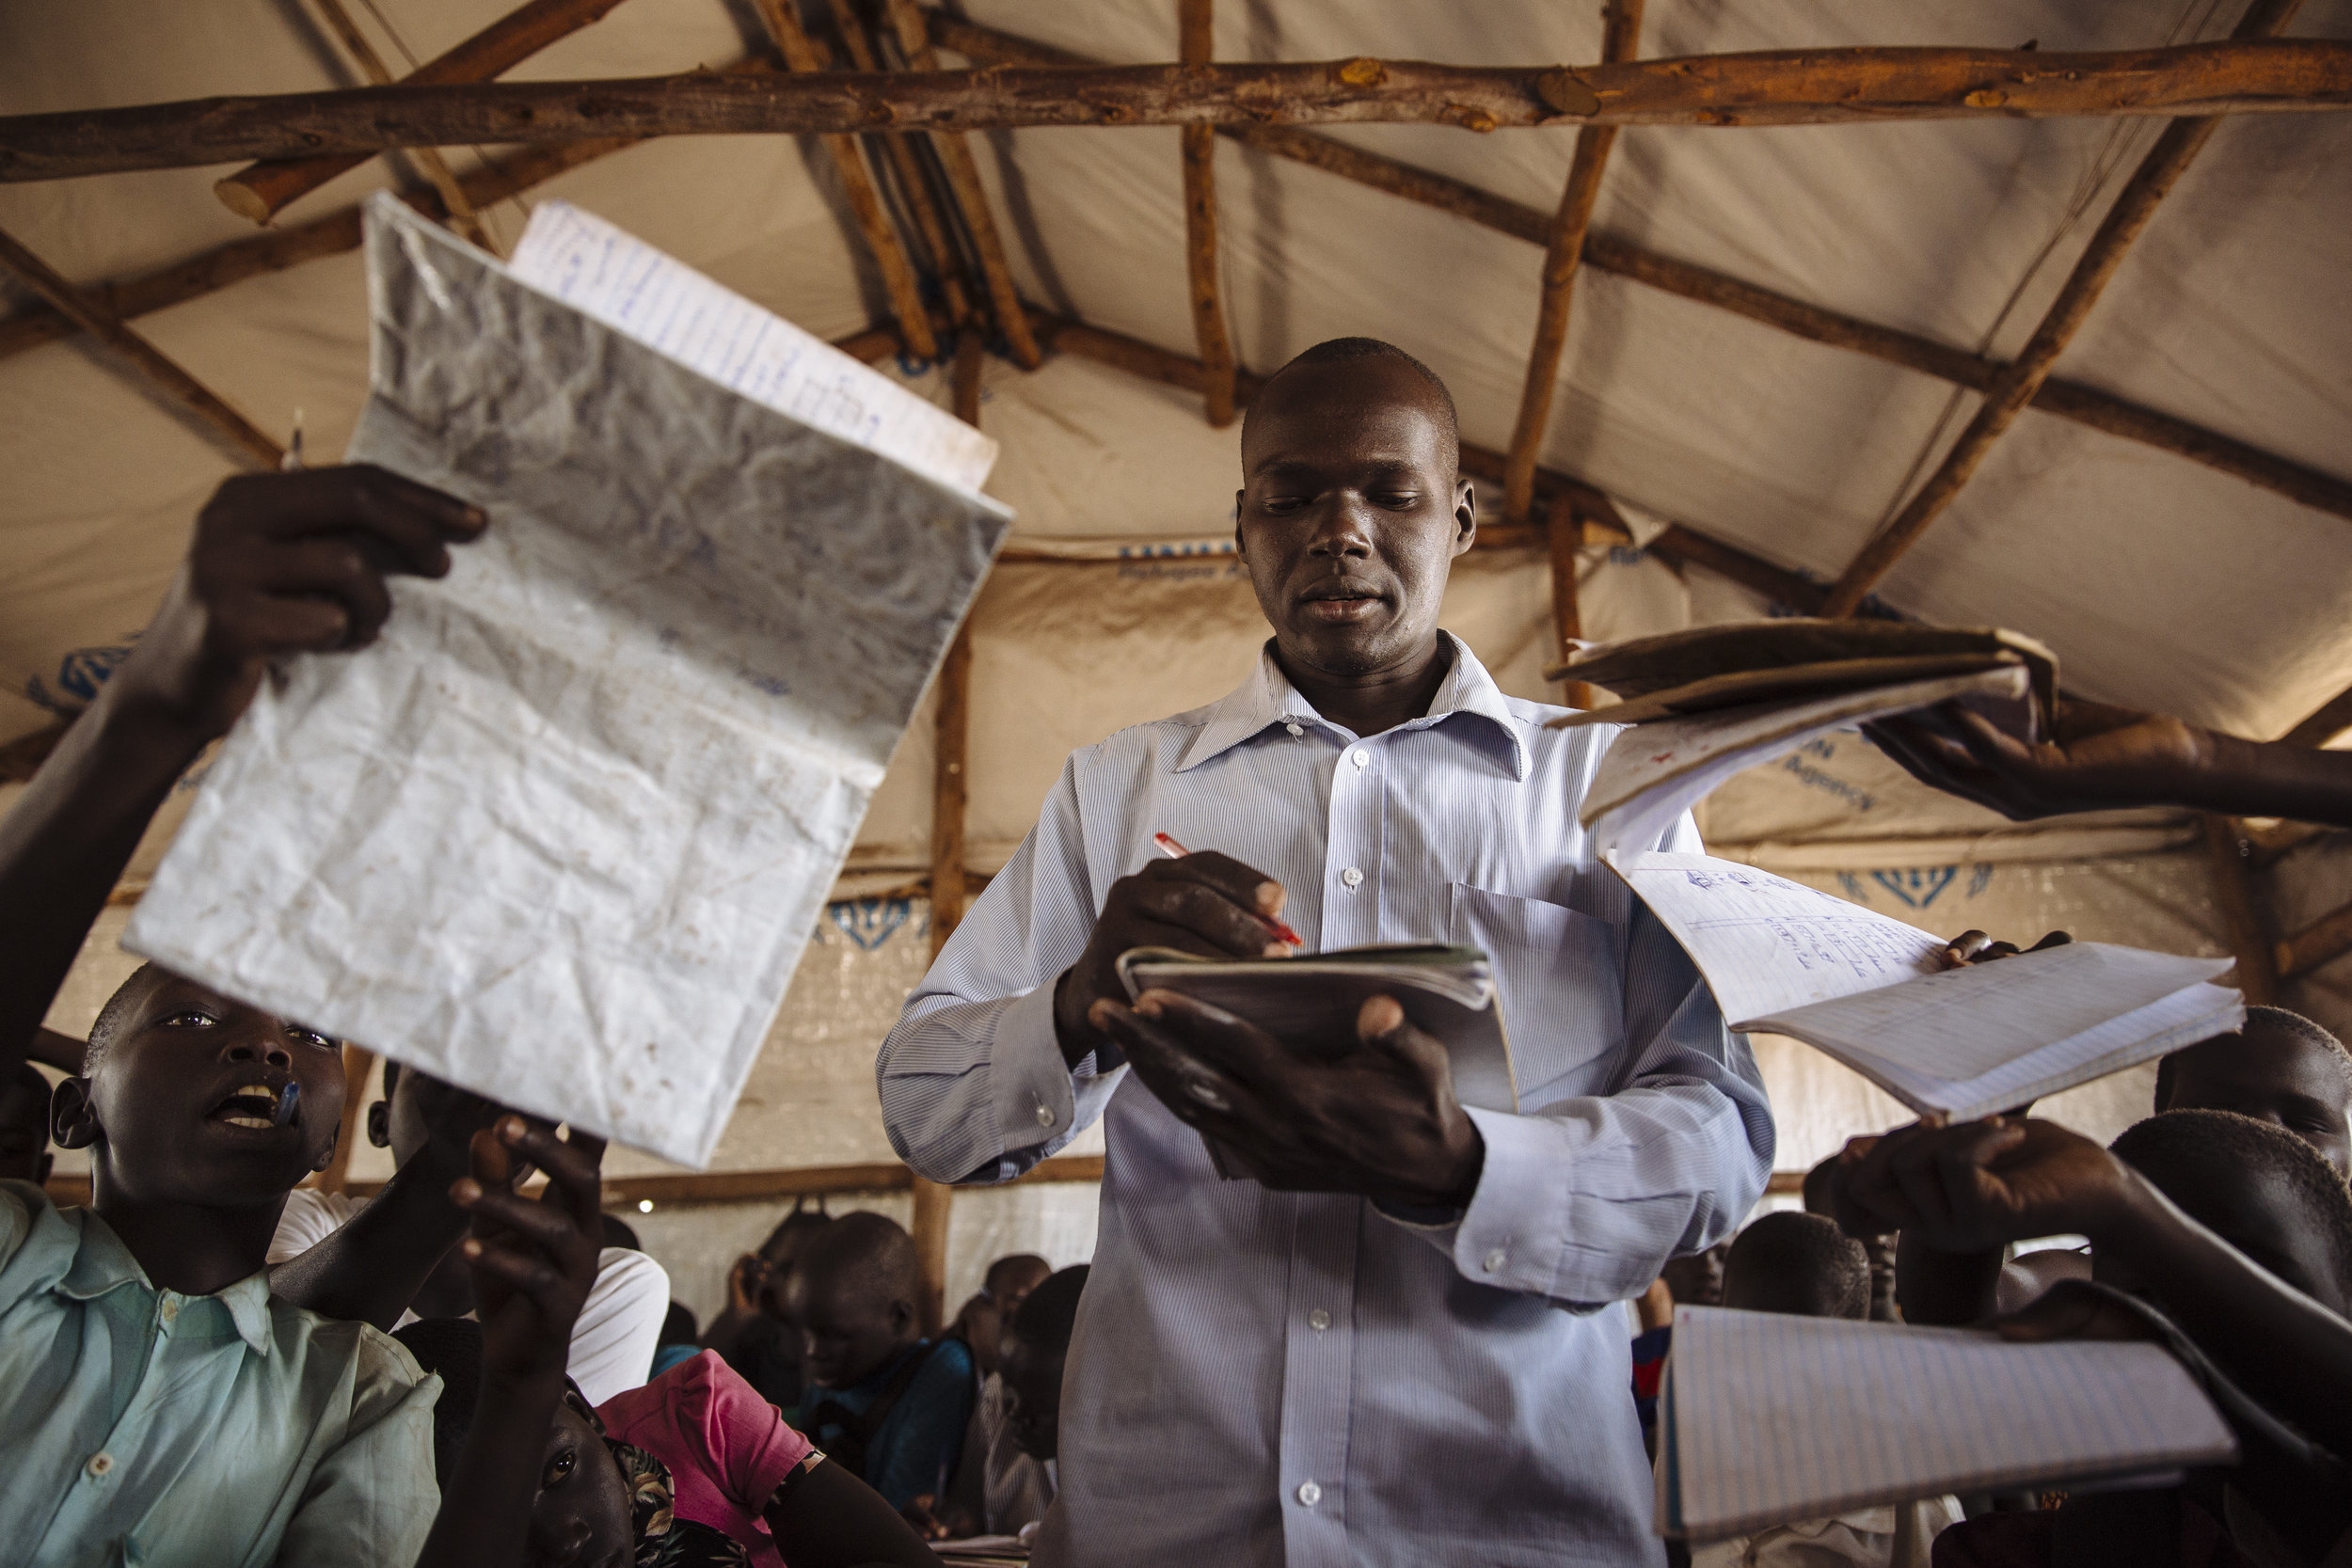 A teacher checks the work of his students during a mathematics class at the Ofonze Primary School in Bidibidi refugee settlement, Yumbe District, Northern Region, Uganda.